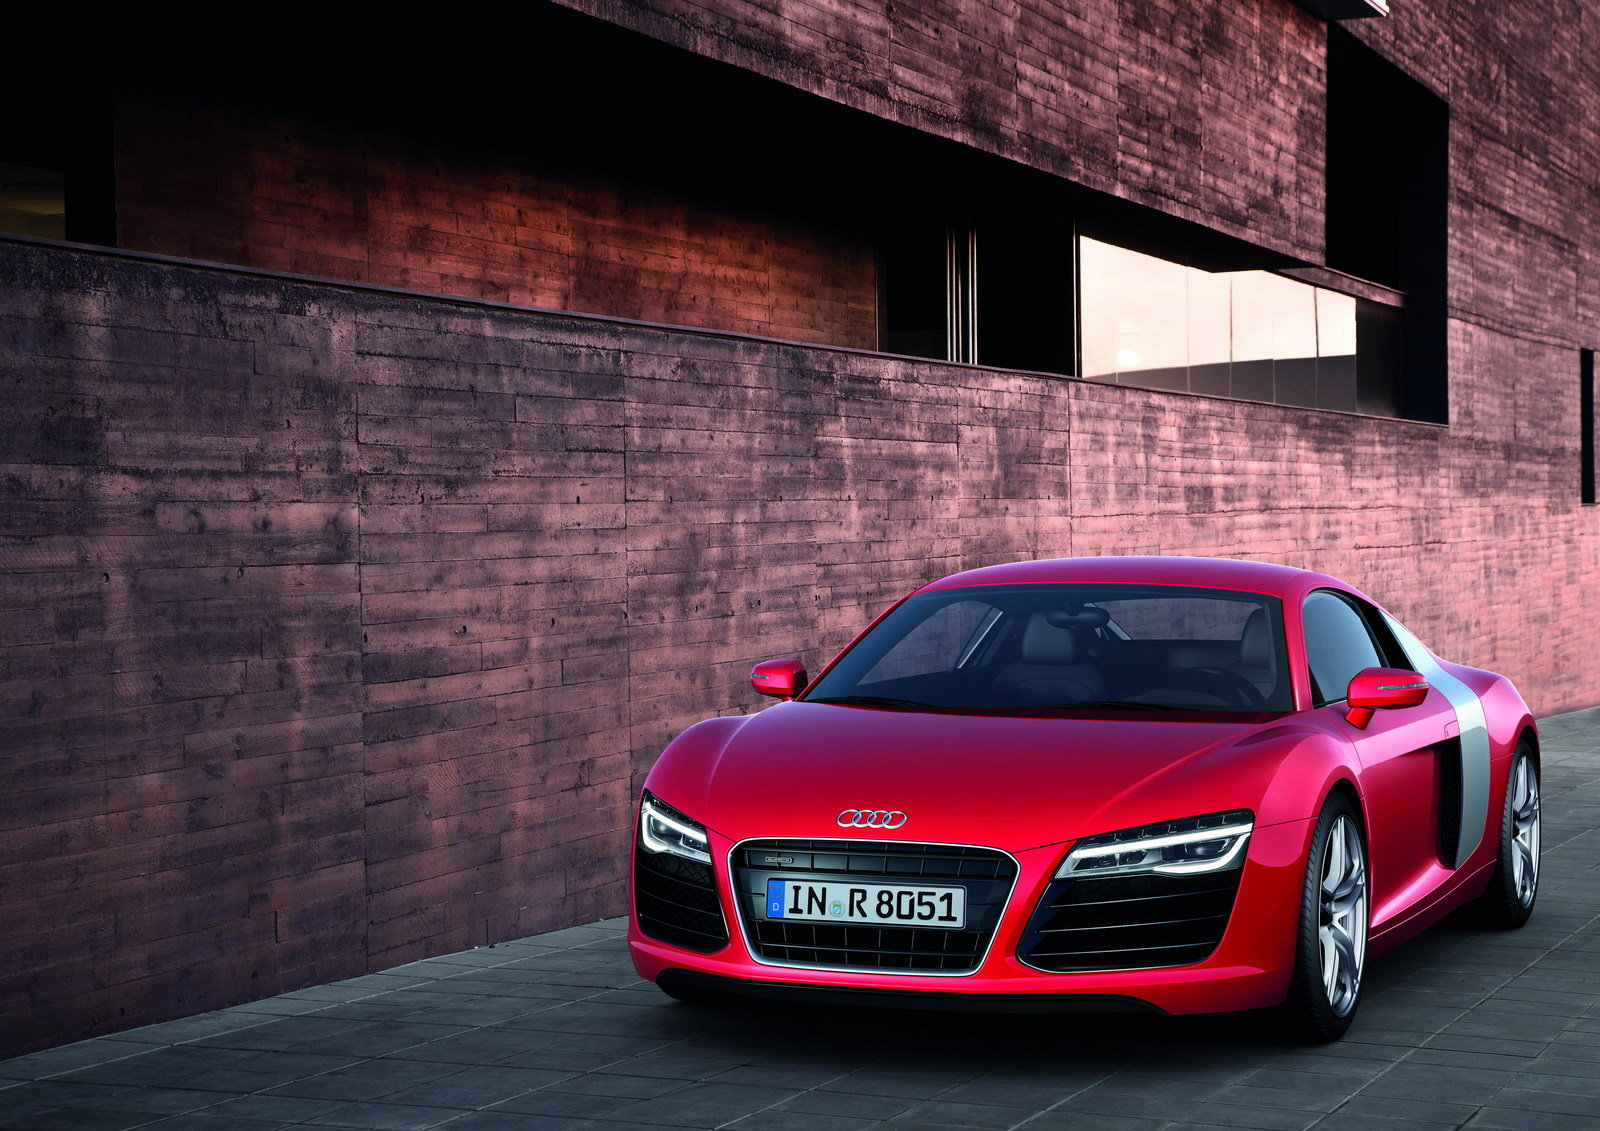 2014 2015 audi r8 v8 coupe picture 470657 car review top speed. Black Bedroom Furniture Sets. Home Design Ideas